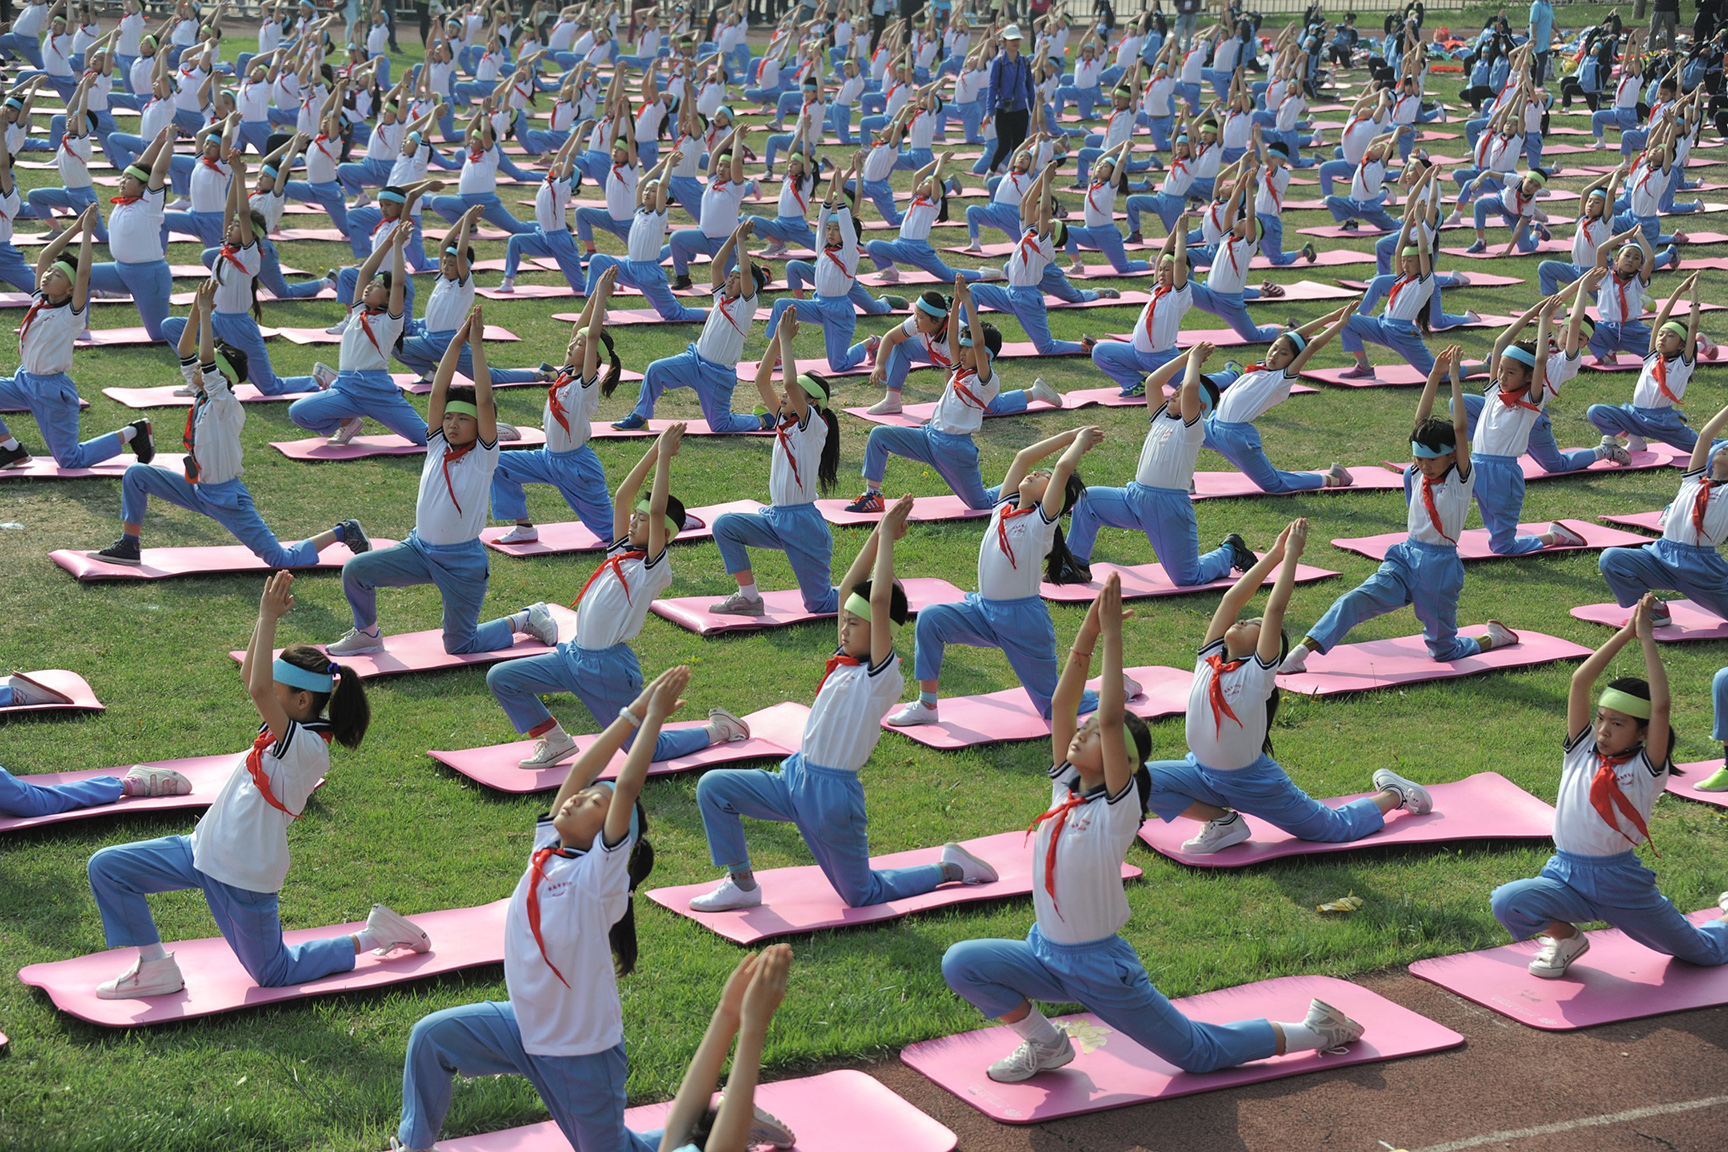 Students practice Yoga on campus in Jinan